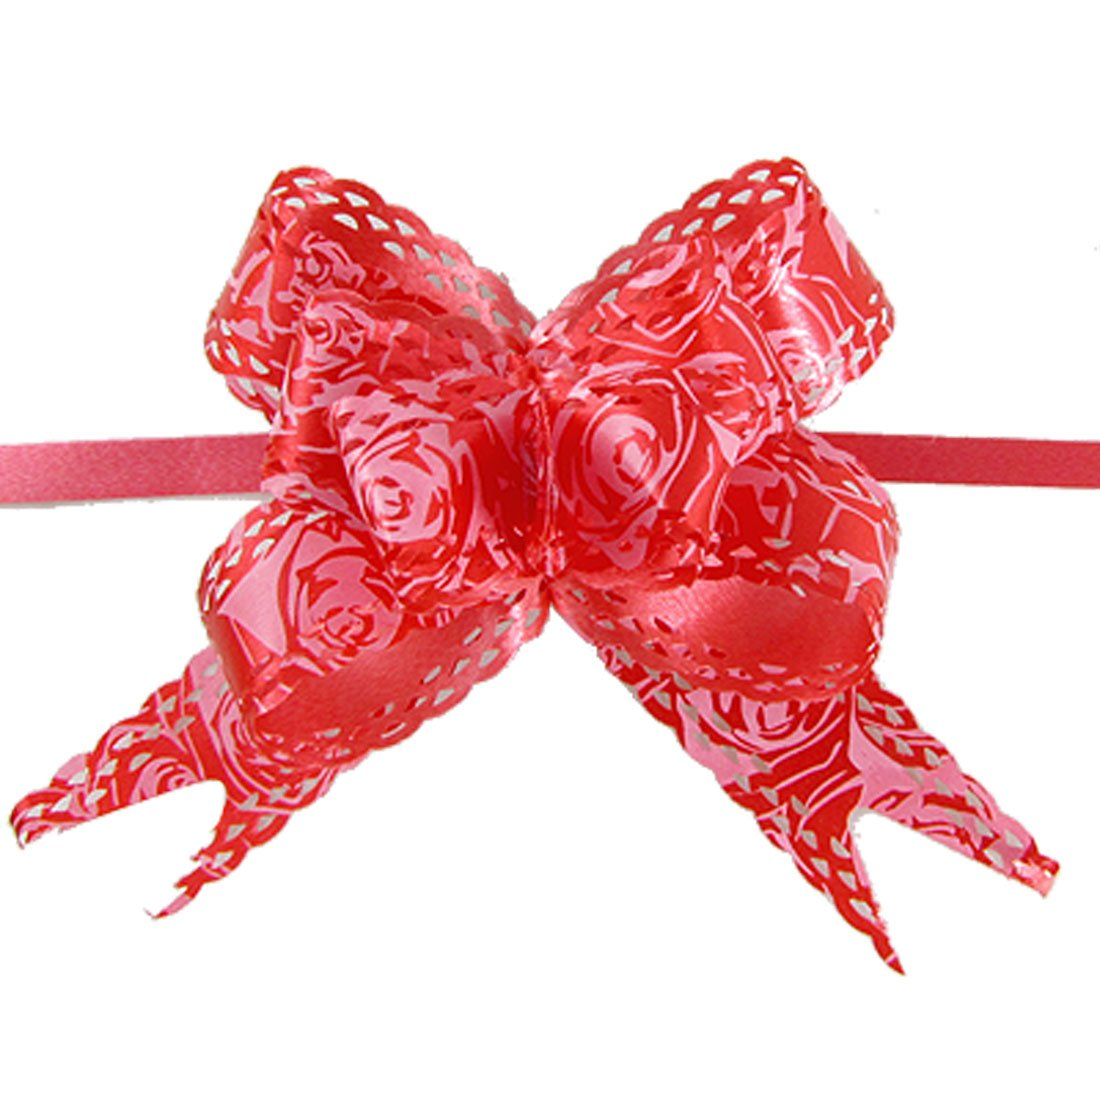 Rose print christmas decoration gift wrap red pull bow ribbon 10 pull bow ribbon is for decoration use perfect for embellishment gift wrapping packaging bows and scrapbooking they are also fit for decorating your negle Images